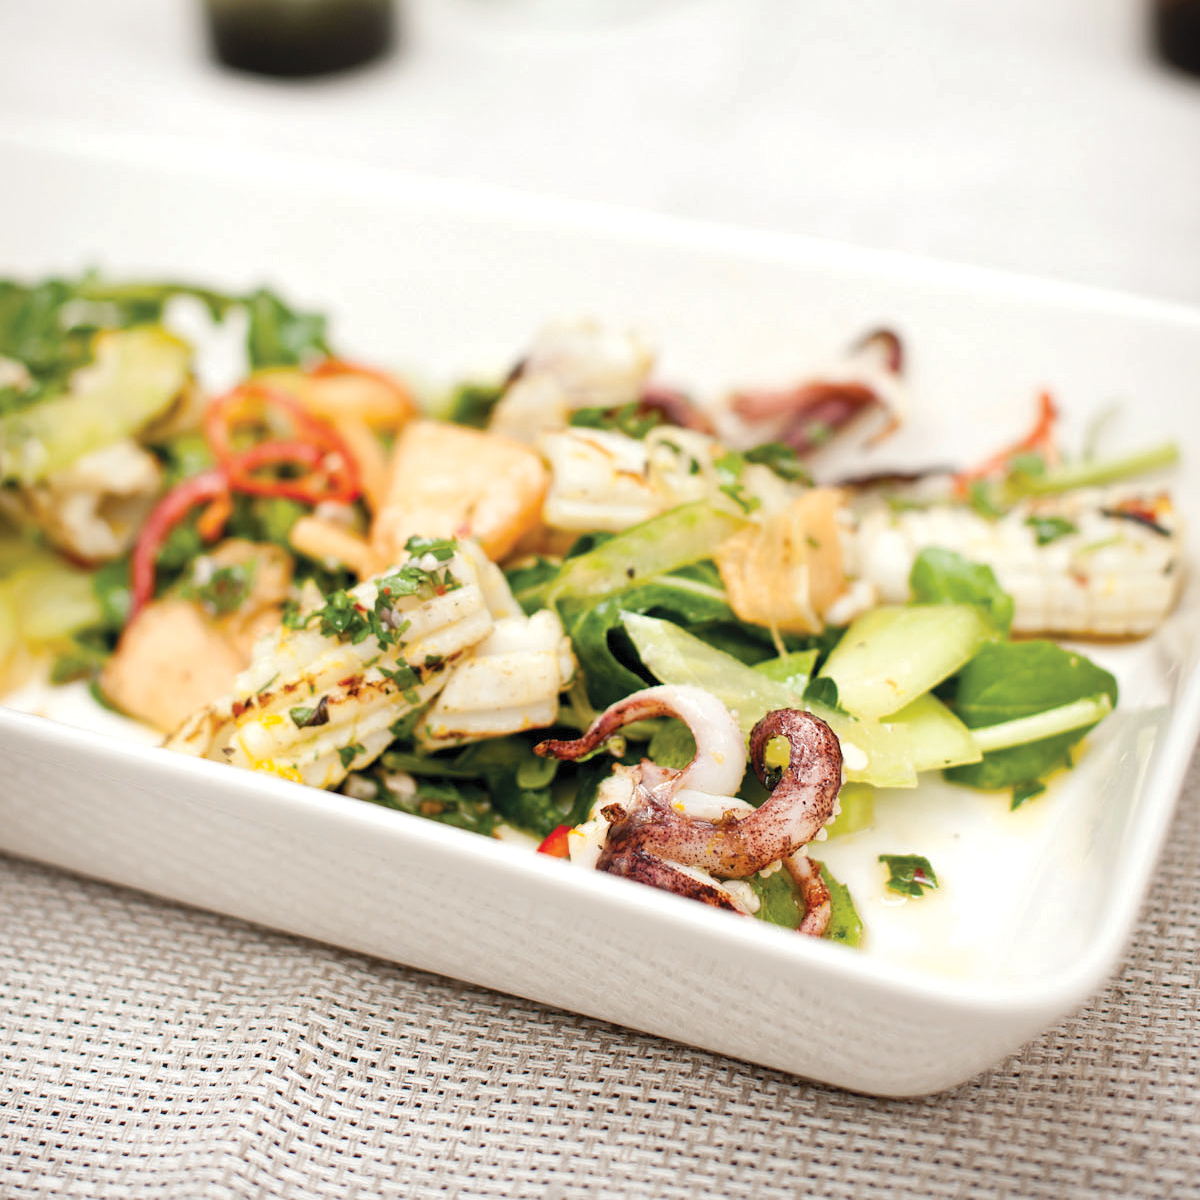 201109-r-grilled-squid-salad-with-arugula-and-melon.jpg